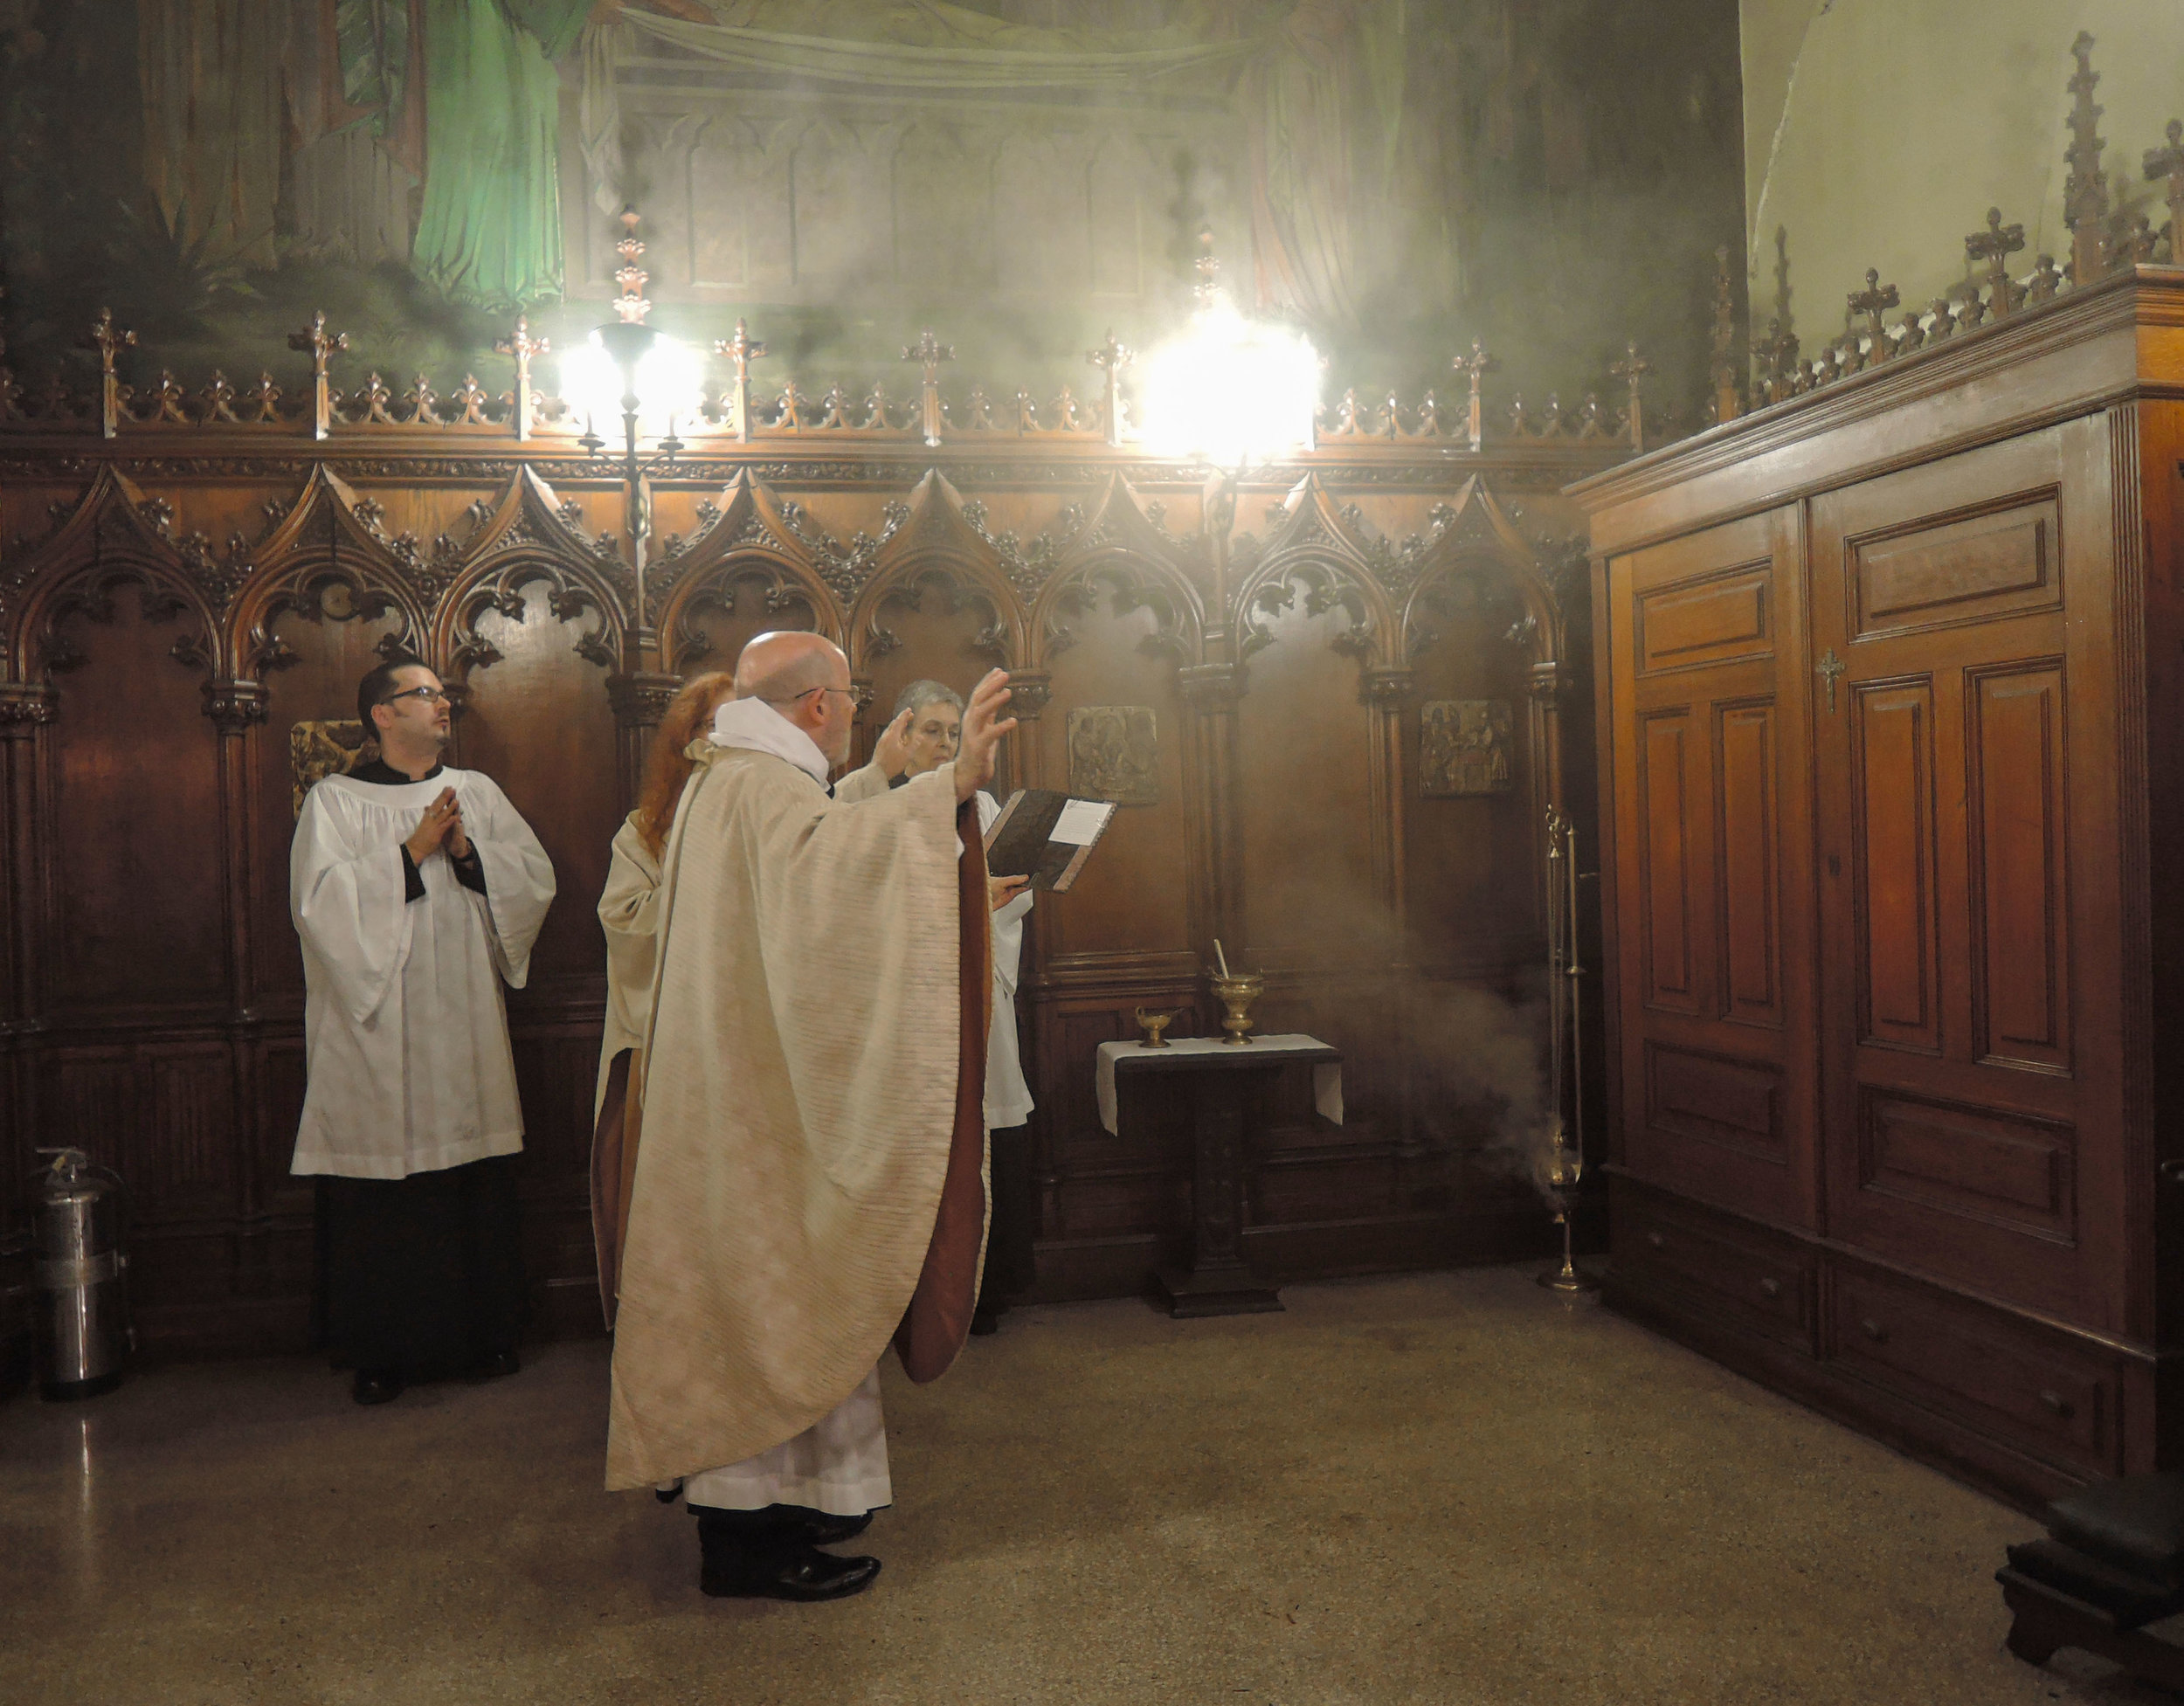 The Blessing of the Vault following the Evening Sung Mass on All Souls' Day.